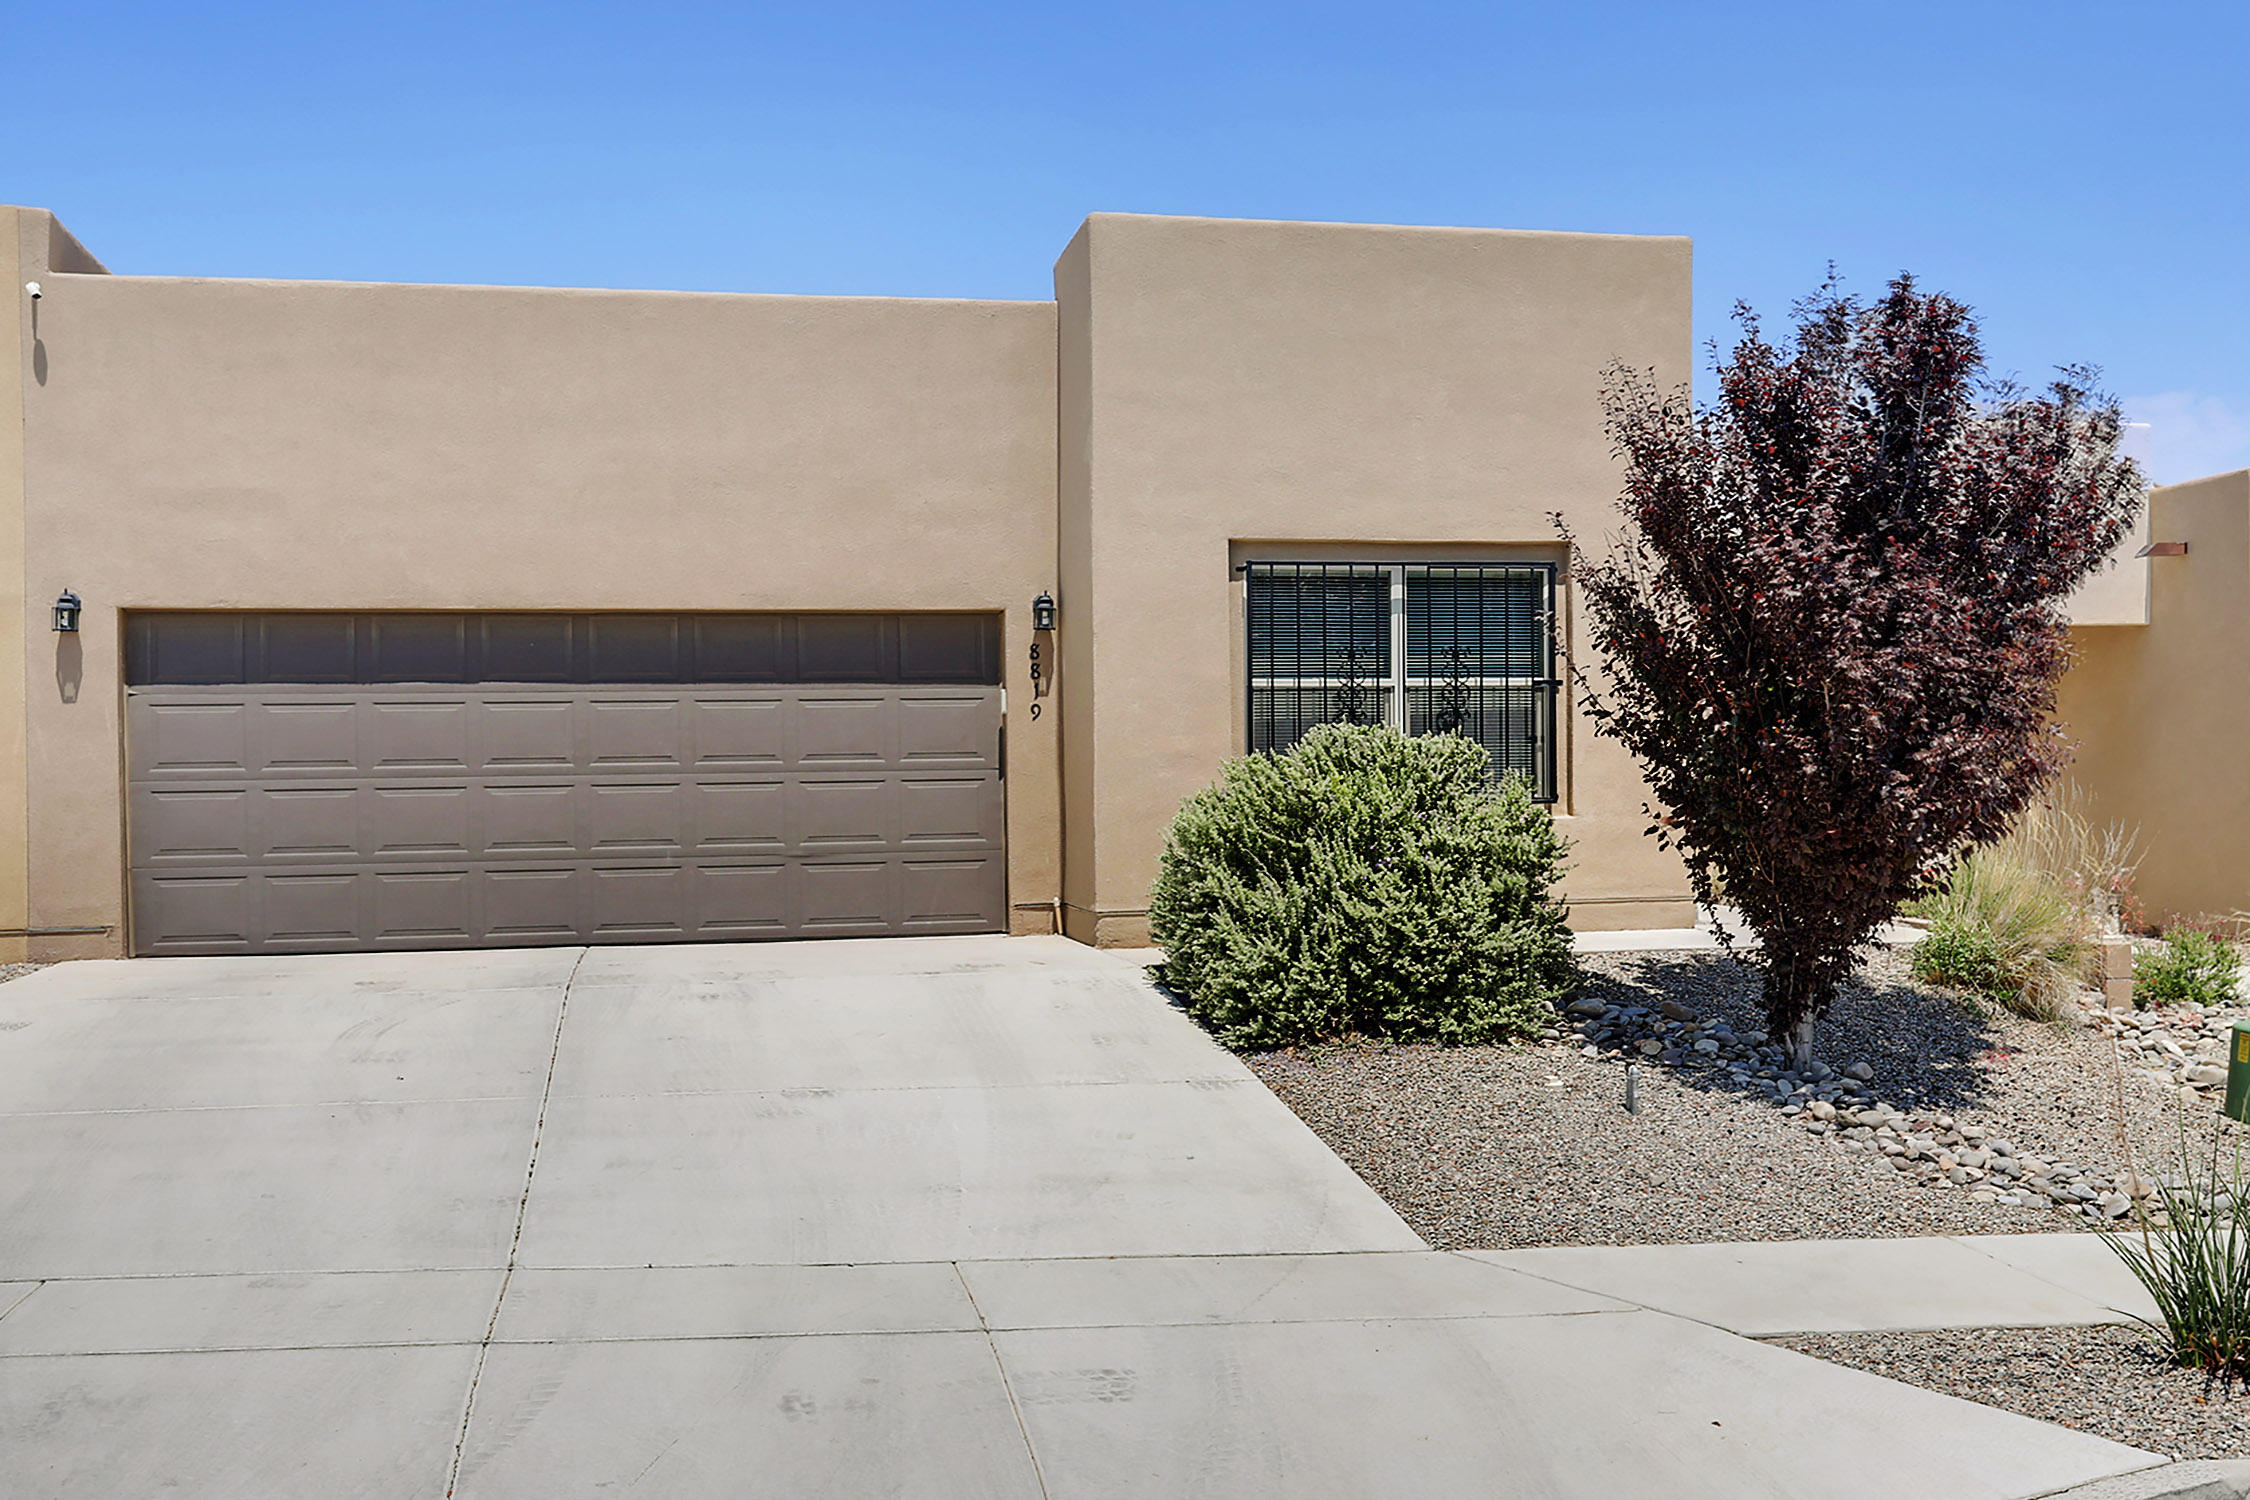 This ONE-OWNER Green Built townhome feels brand new! Located in the desirable Storm Cloud Sub, This Open floor plan lives large! Home features 3 bedrooms, 2bath, ceramic tile flooring and surrounds in the Kitchen & bathrooms. Refrigerated air, tankless water heater for never ending hot water & energy efficient. Plus a fully landscaped backyard! Don't miss out on this amazing home. Pride of ownership shows! Schedule your showing today!